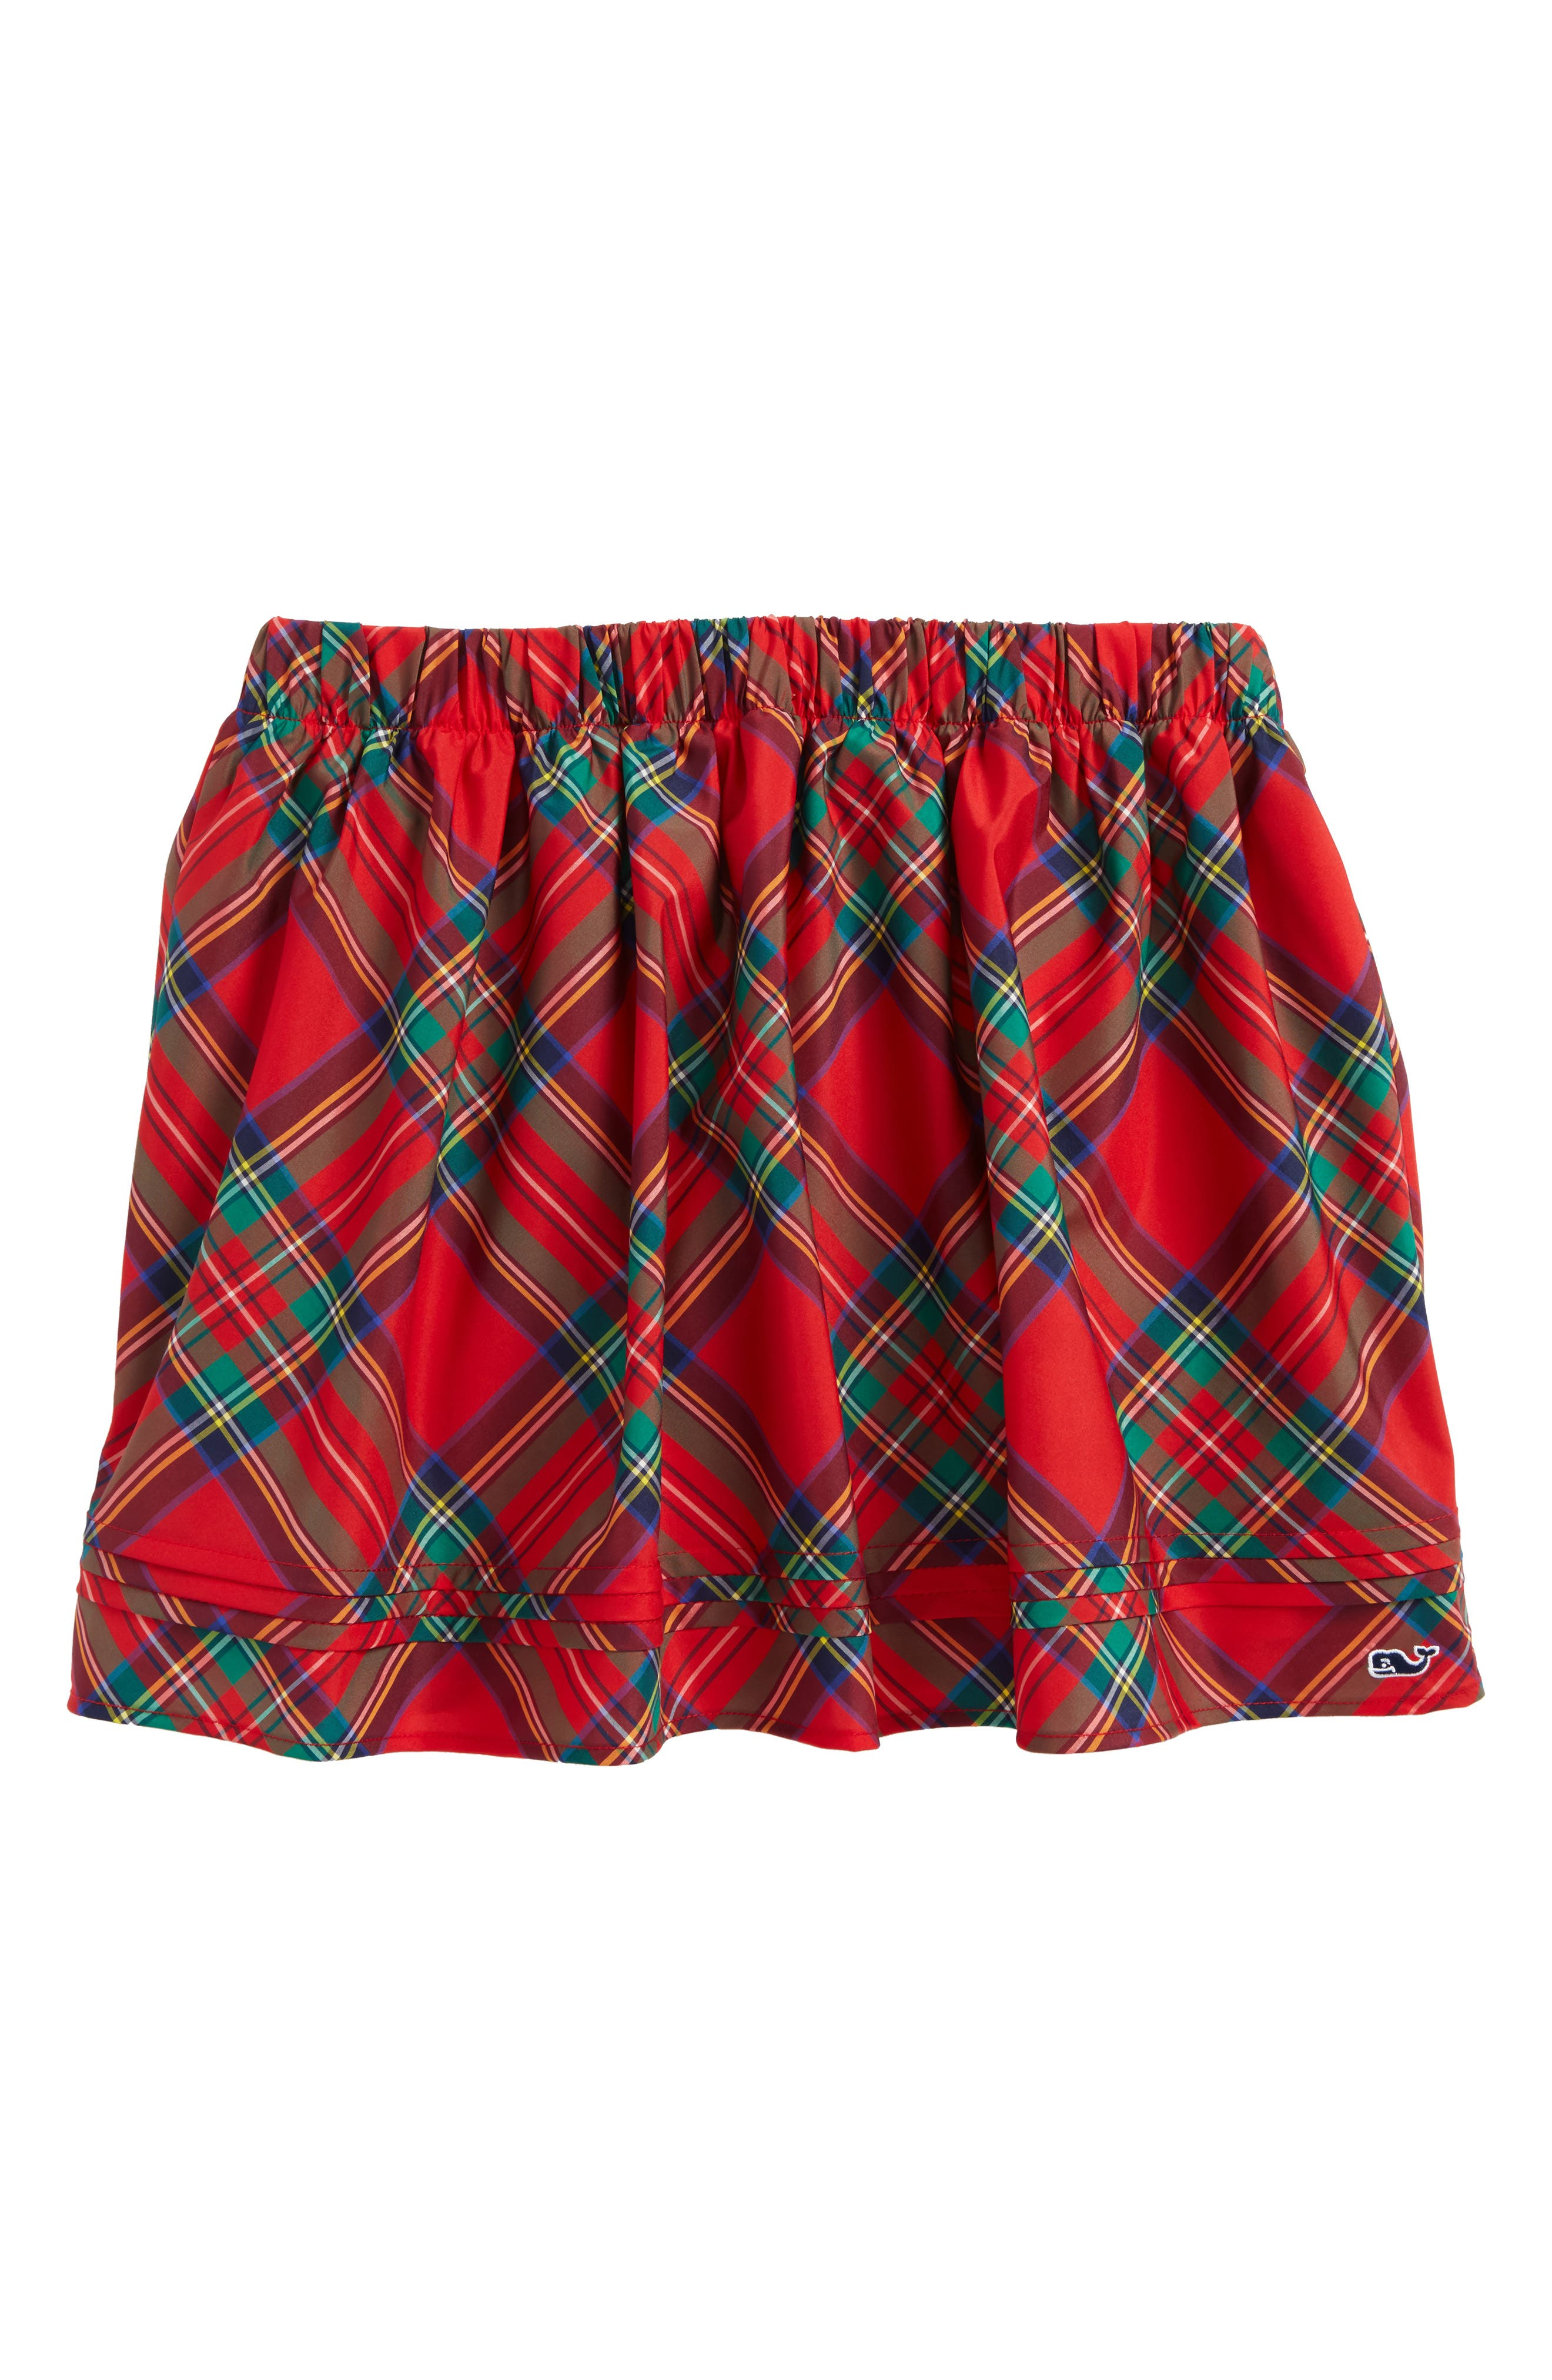 Jolly Plaid Holiday Skirt,                         Main,                         color, Lighthouse Red